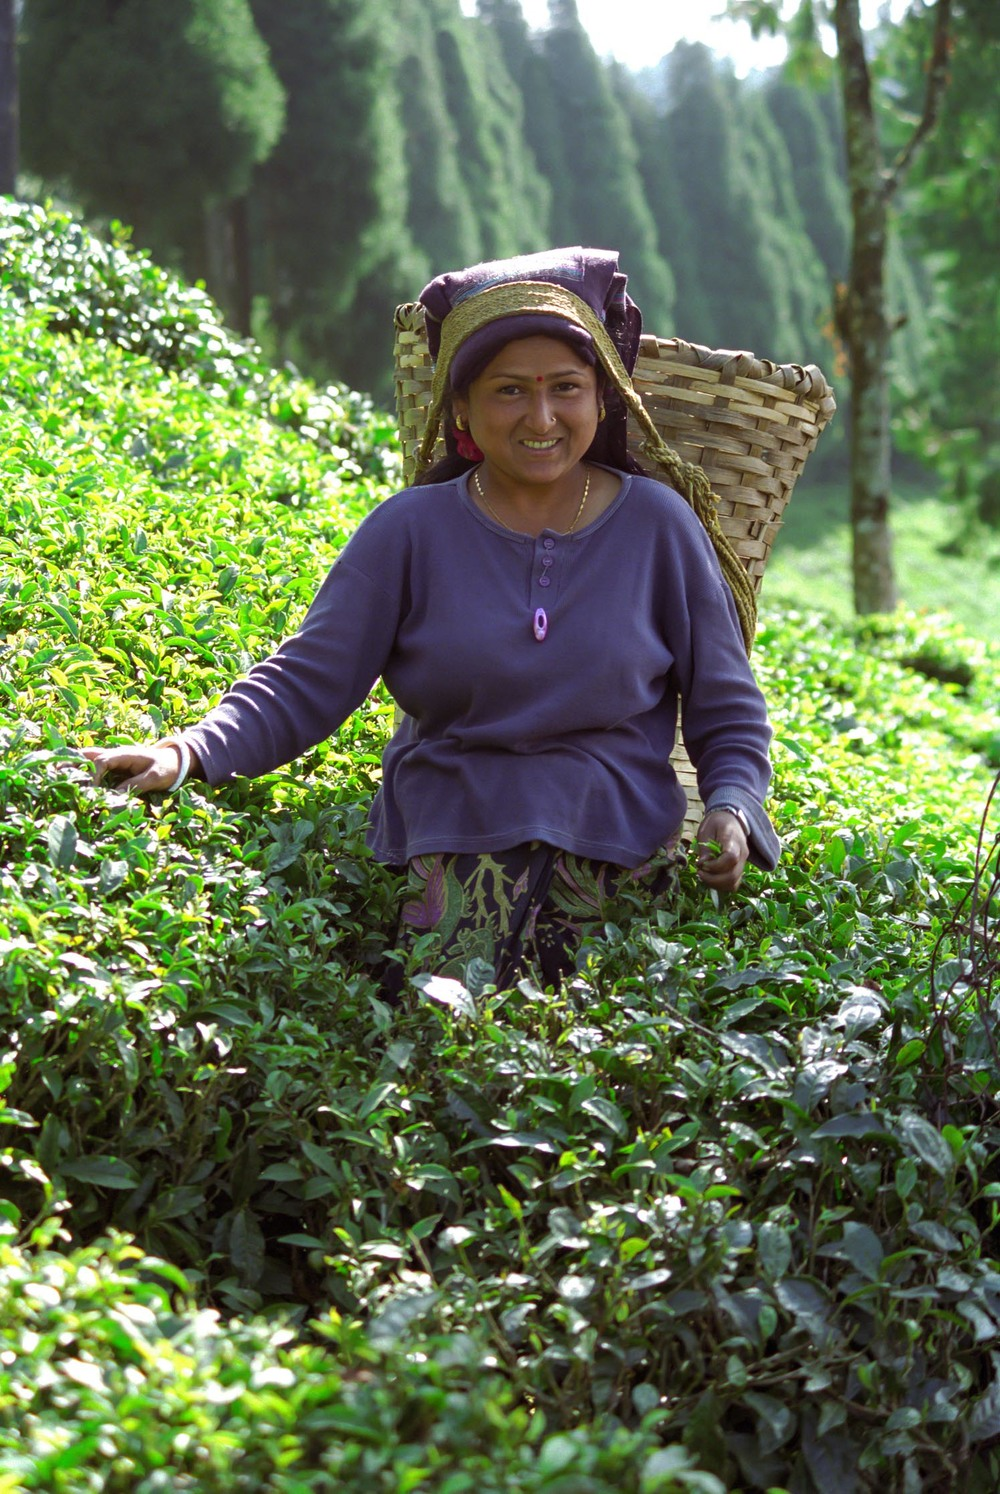 Tea picker in Darjeeling, India